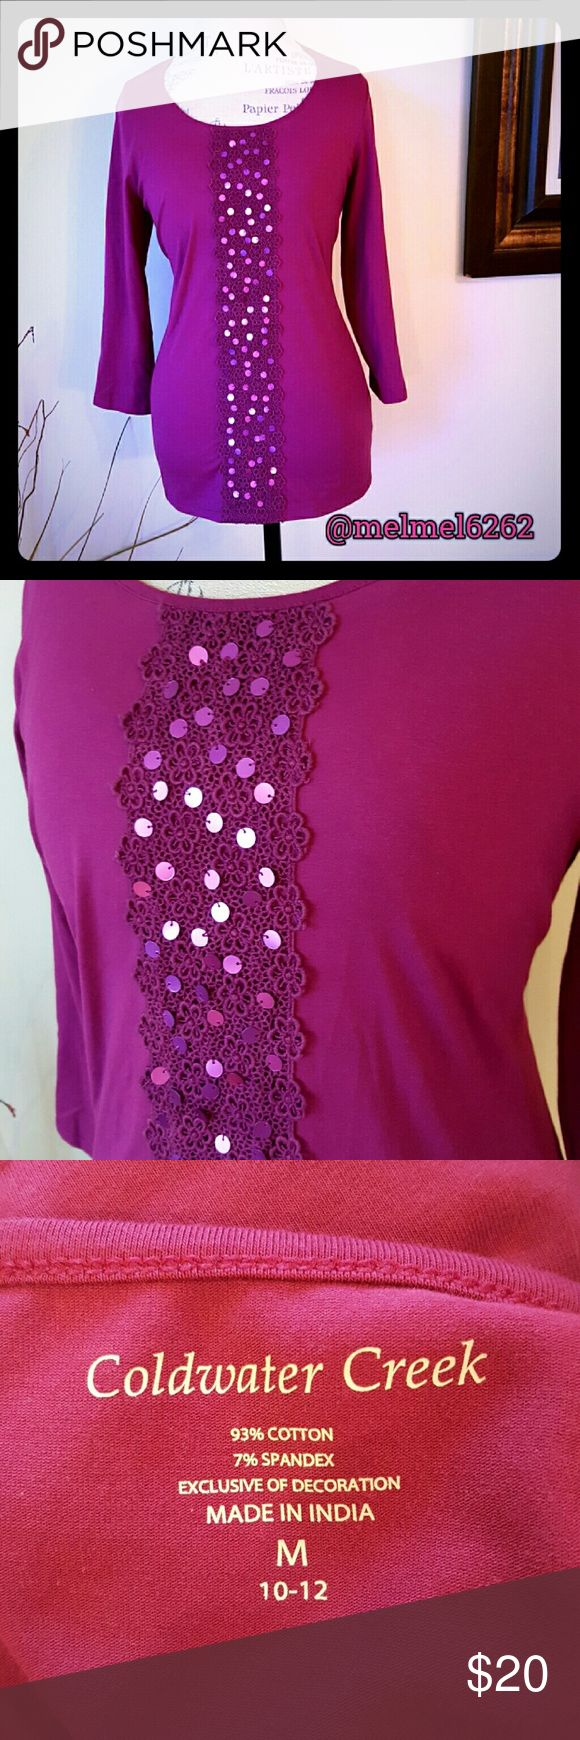 Coldwater Creek Top Every girl needs a little sparkle! Cute top from Coldwater Creek.  Excellent used condition from clean smoke free home. Coldwater Creek Tops